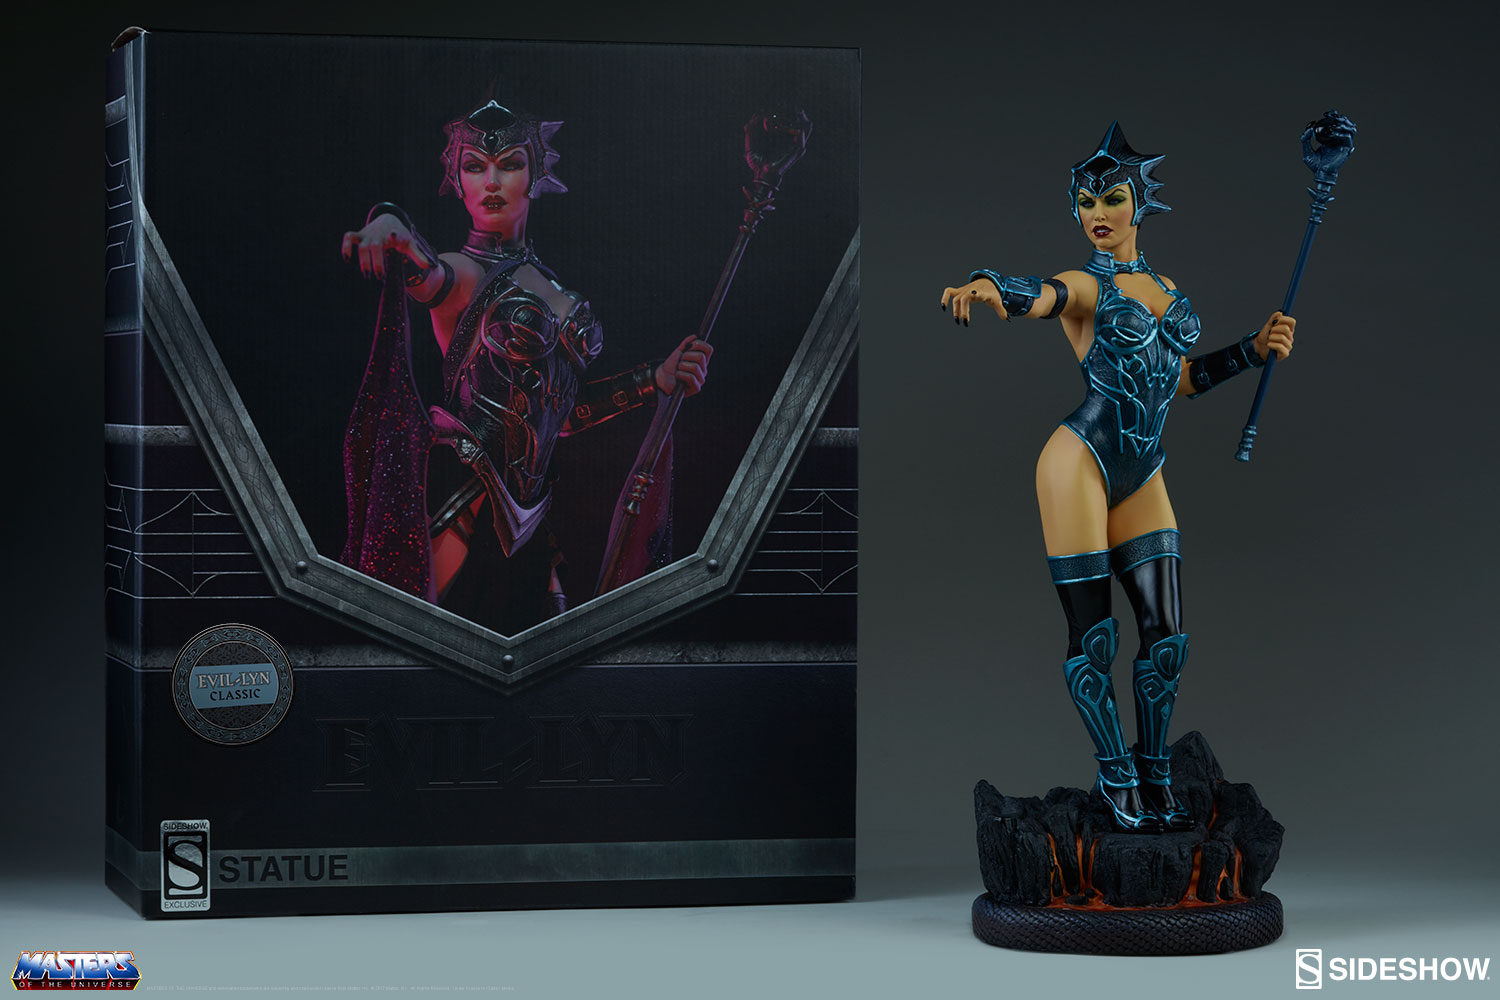 Sideshow Collectibles Masters Of The Universe Evil-Lyn Classic Statue Pre-Orders